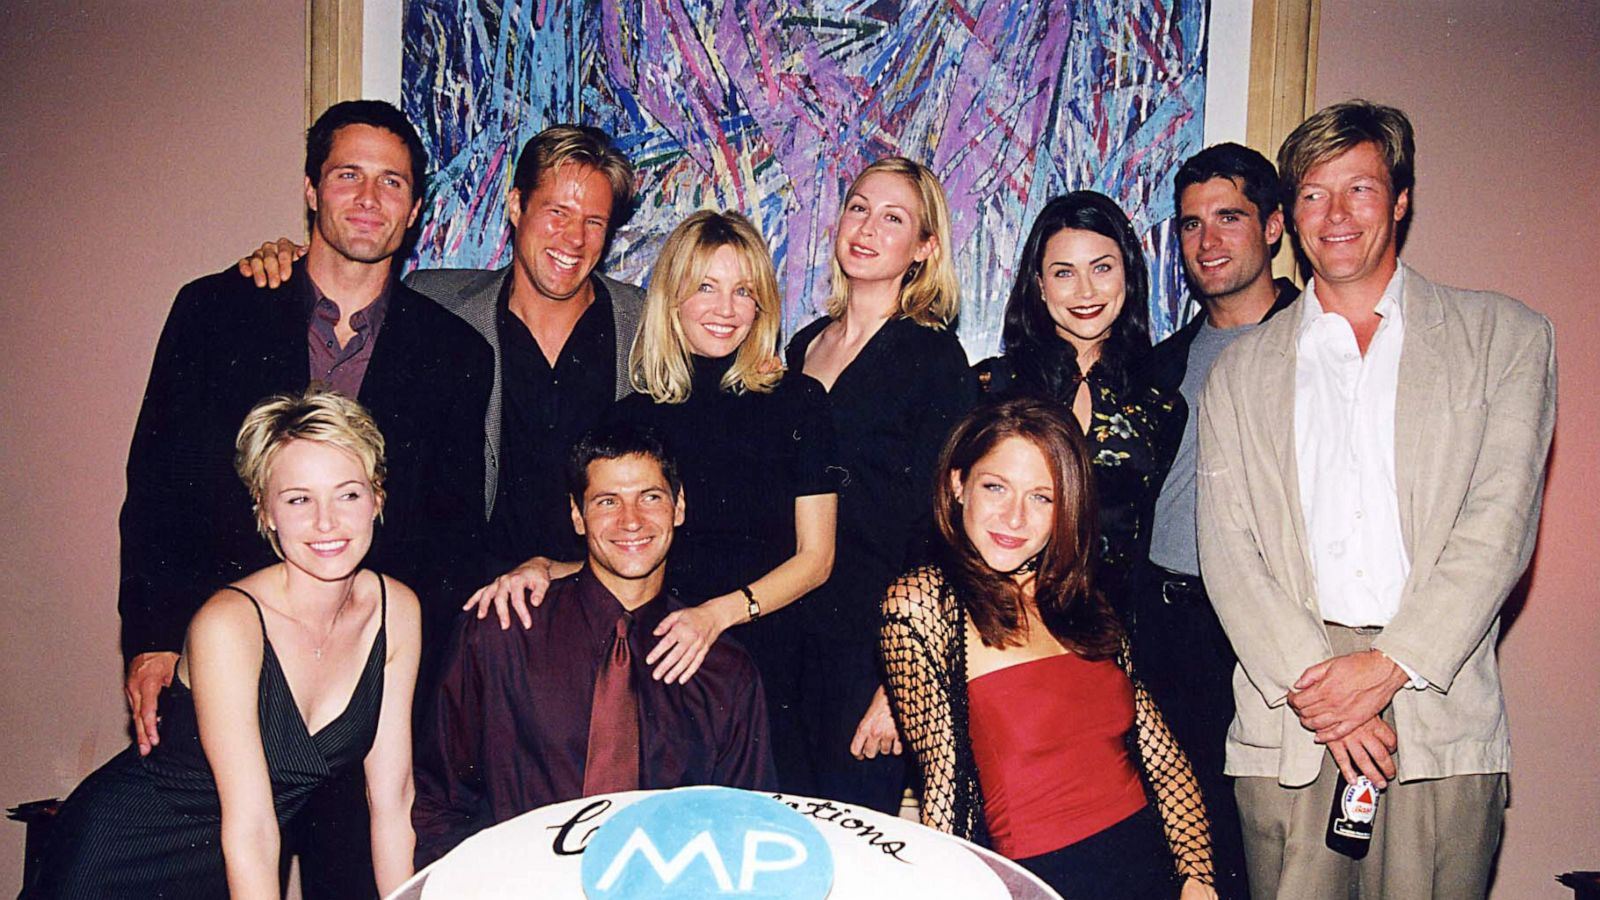 Halloween 2020 Melrose Place Cast of 'Melrose Place' reunites for the 1st time in 8 years for